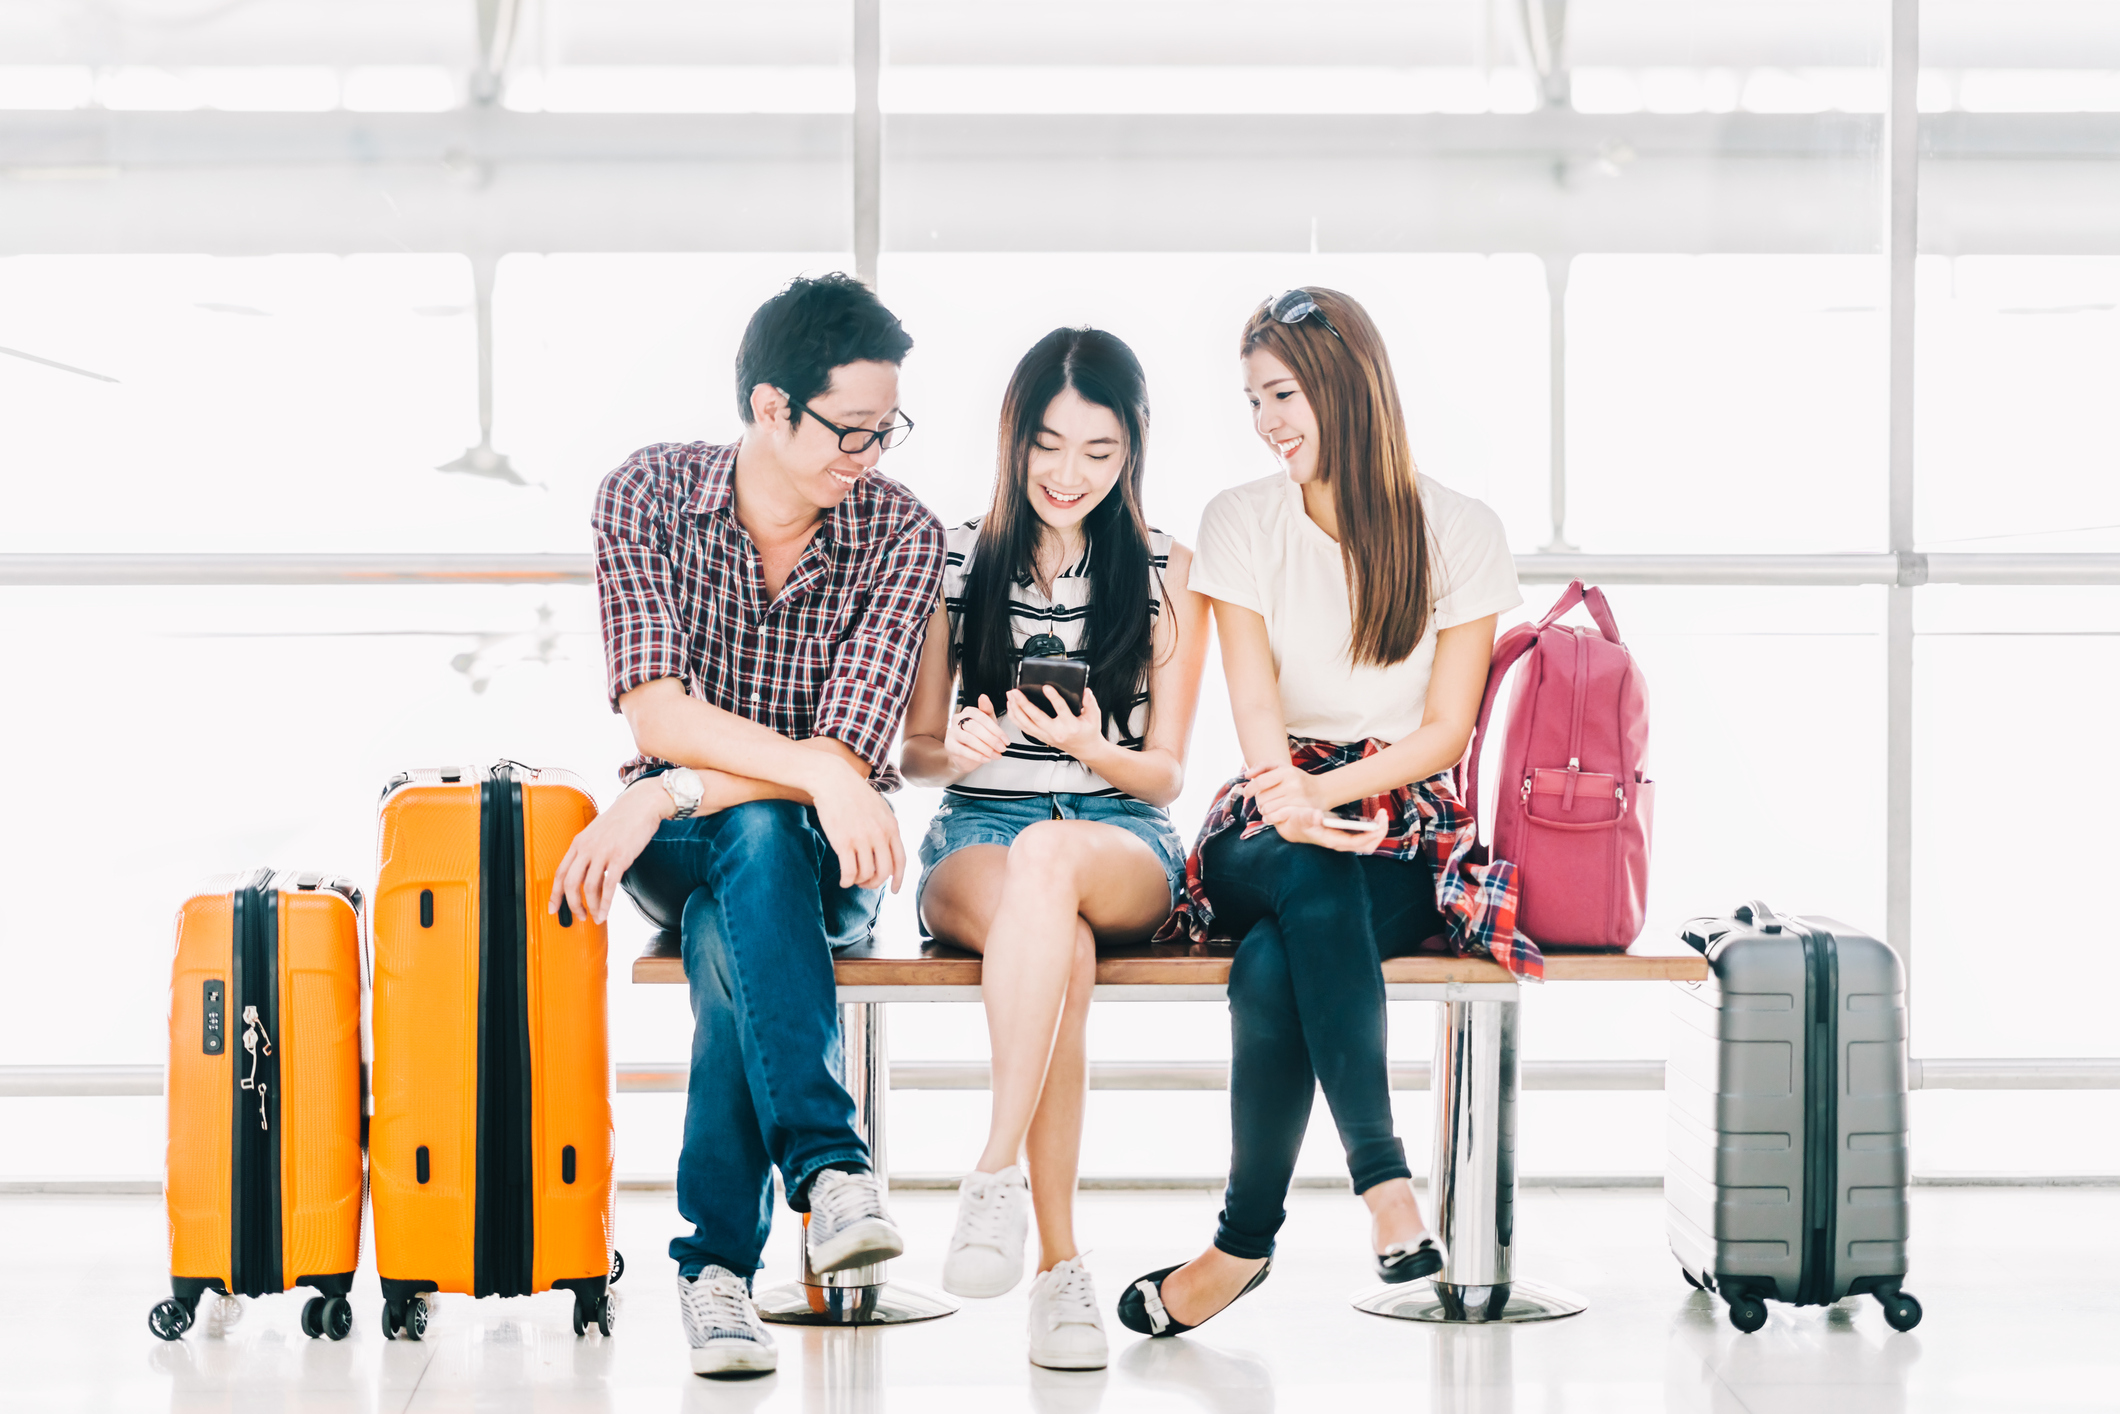 A group of young Asian people checking their mobile phones at the airport.